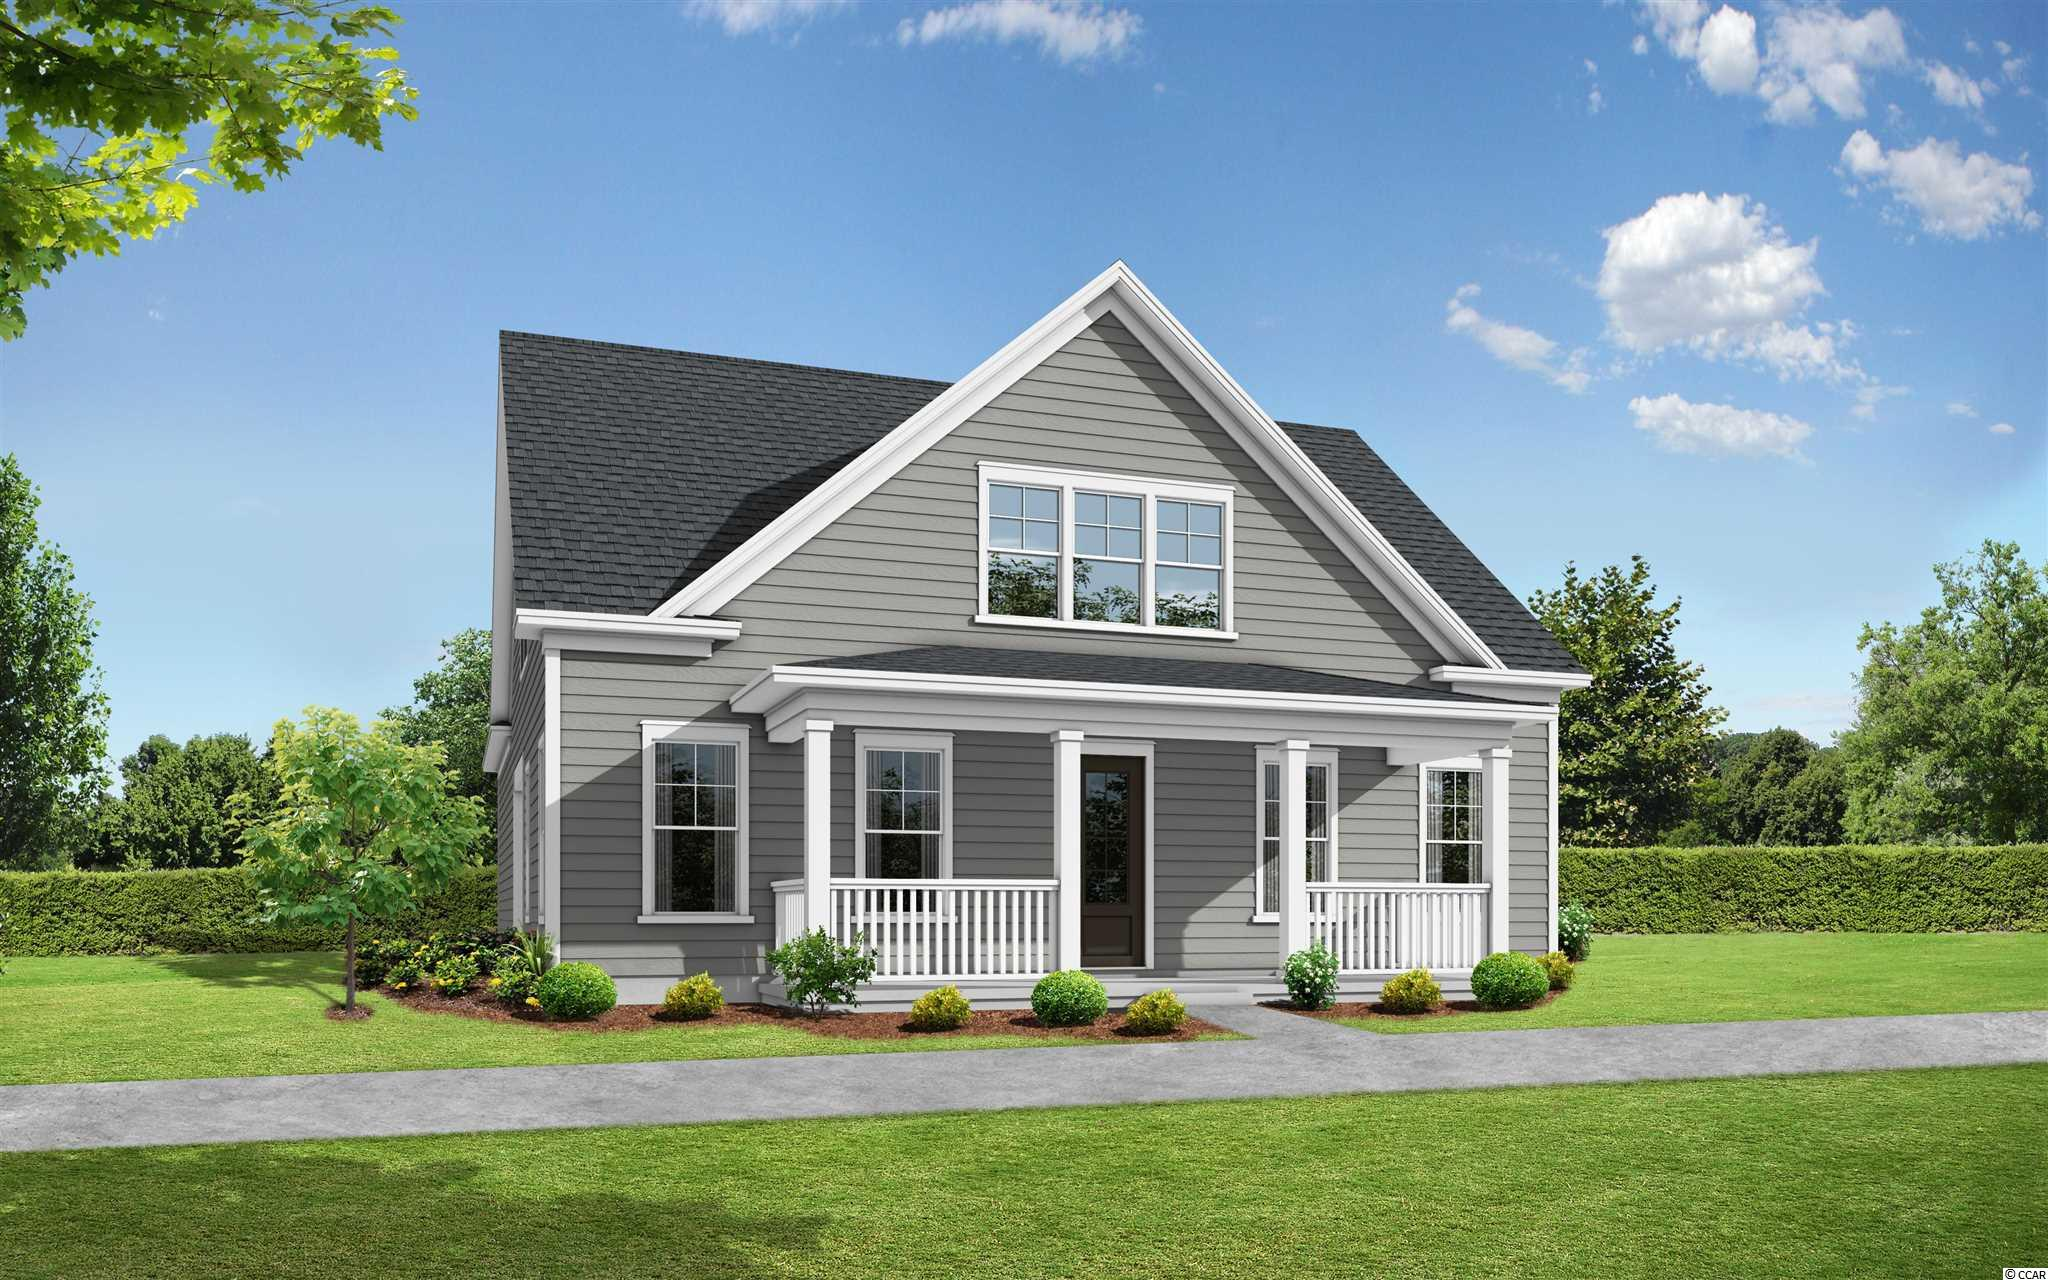 Under construction and will be ready Winter 2021! A touch of style and design, this beautiful home offers an inviting covered front porch that overlooks the greenway park. This Cassandra A Plan boasts a well-designed kitchen which opens into a bright casual dining area. Kitchen is equipped with a large center island, plenty of counter and cabinet space, and ideal for entertaining. The primary bedroom suite is highlighted by 2 large walk-in closets, and spa-like bath with cave shower, and private water closet. The second floor is highlighted by a versatile loft, secluded secondary bedrooms with a shared hall bath, and a guest suite that can double as a second primary suite. Additional highlights include a side covered porch for outdoor living and entertaining, a convenient drop zone, centrally located laundry, additional storage, great room fireplace, and engineered hardwood flooring throughout the first floor.